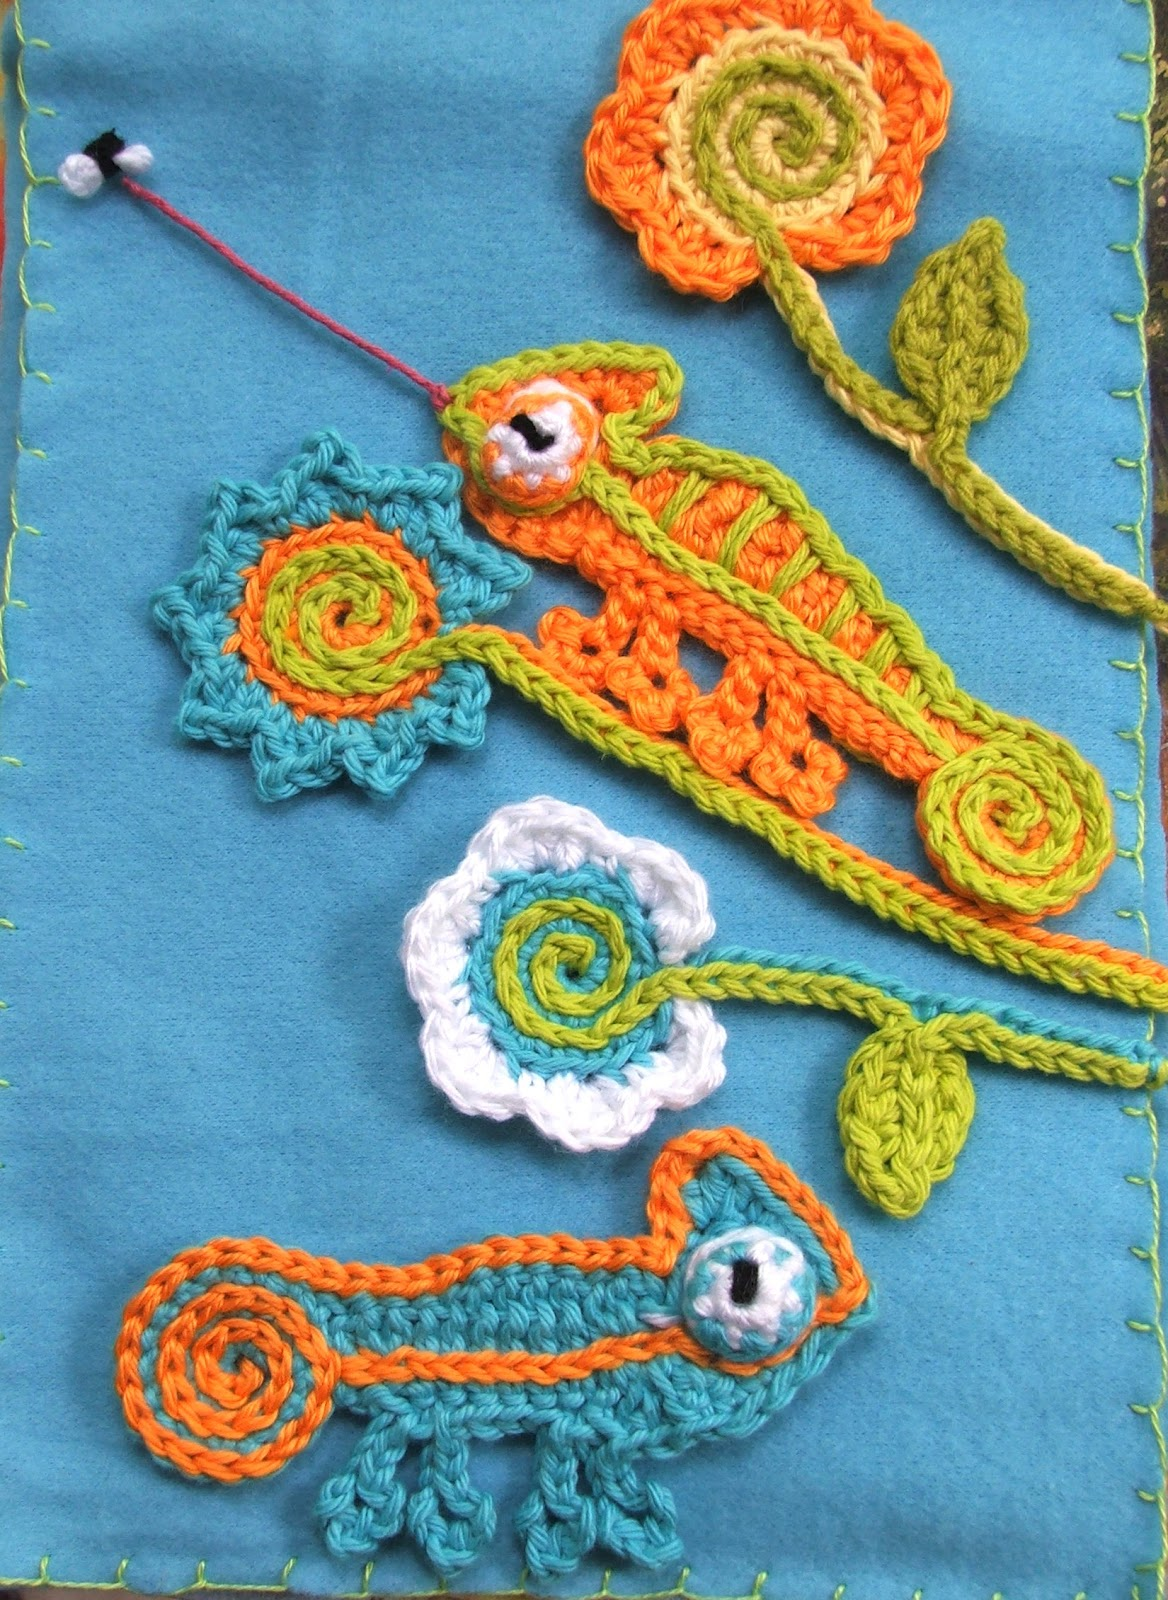 Susan\'s Hippie Crochet: A New Chameleon Pattern inspired by Pascal!